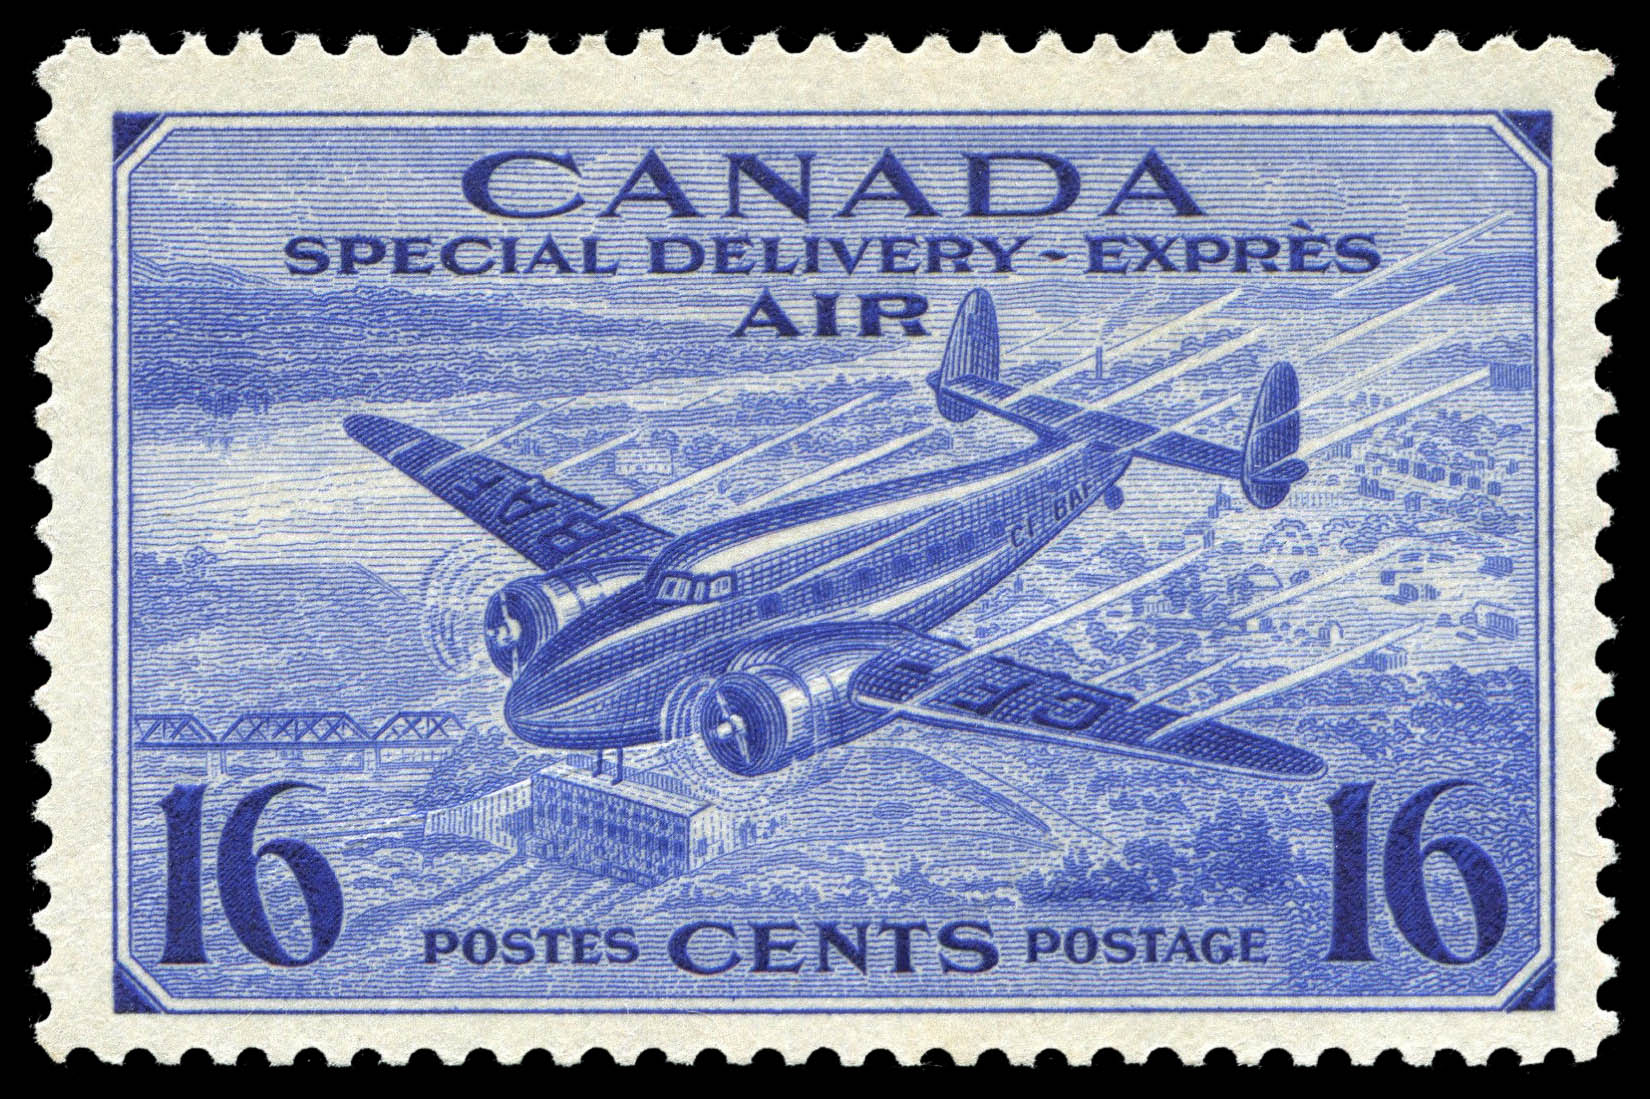 Trans-Canada Airplane, Air, Special Delivery Canada Postage Stamp